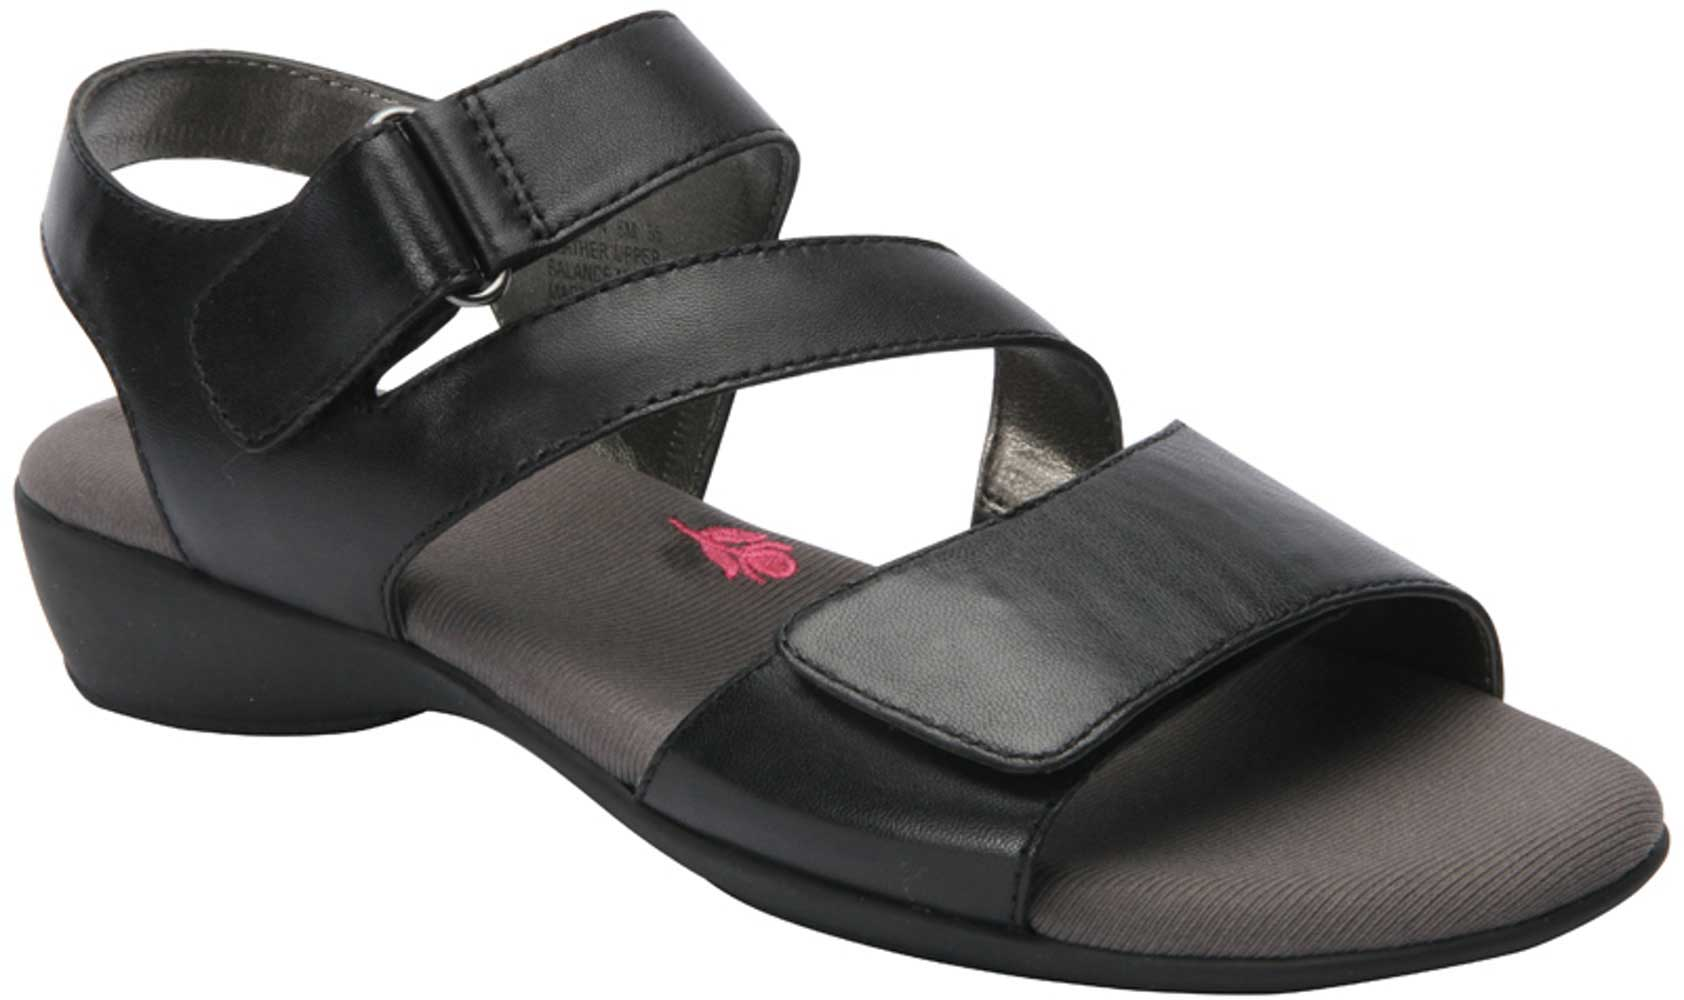 Ros Hommerson Marilyn 67005 - Women's Casual Comfort Shoe -Narrow (2A) - X-Wide (2E)